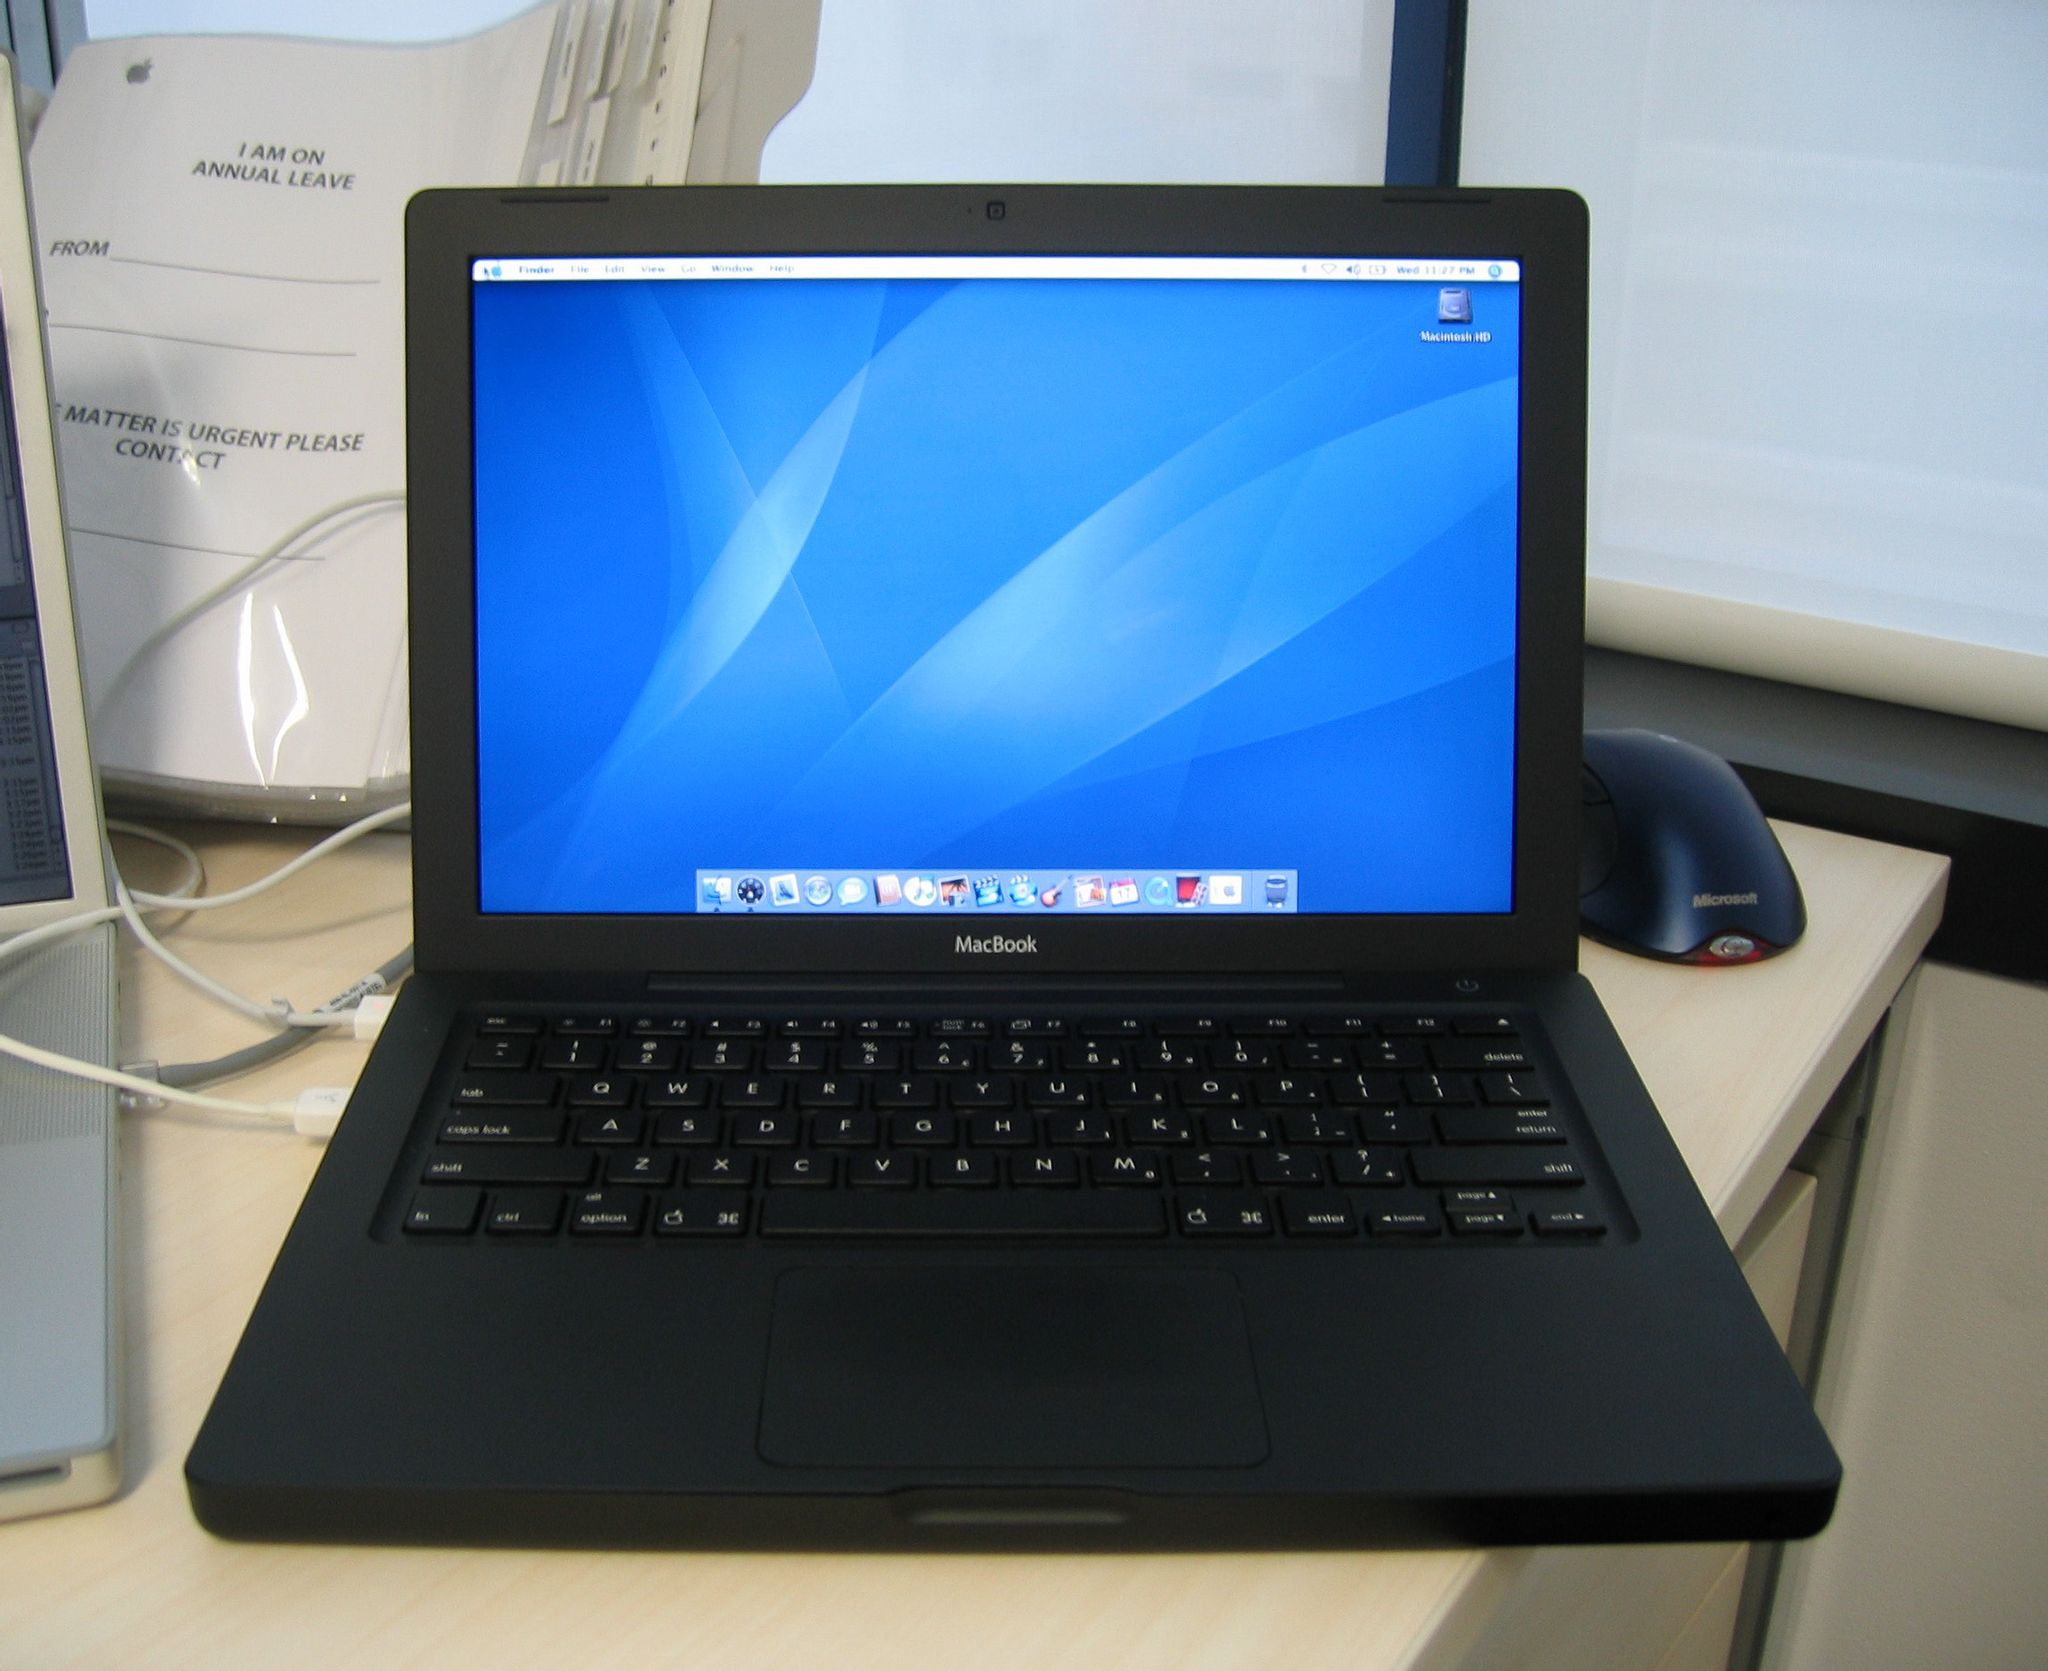 A photo of one of the original polycarbonate MacBooks, in black.